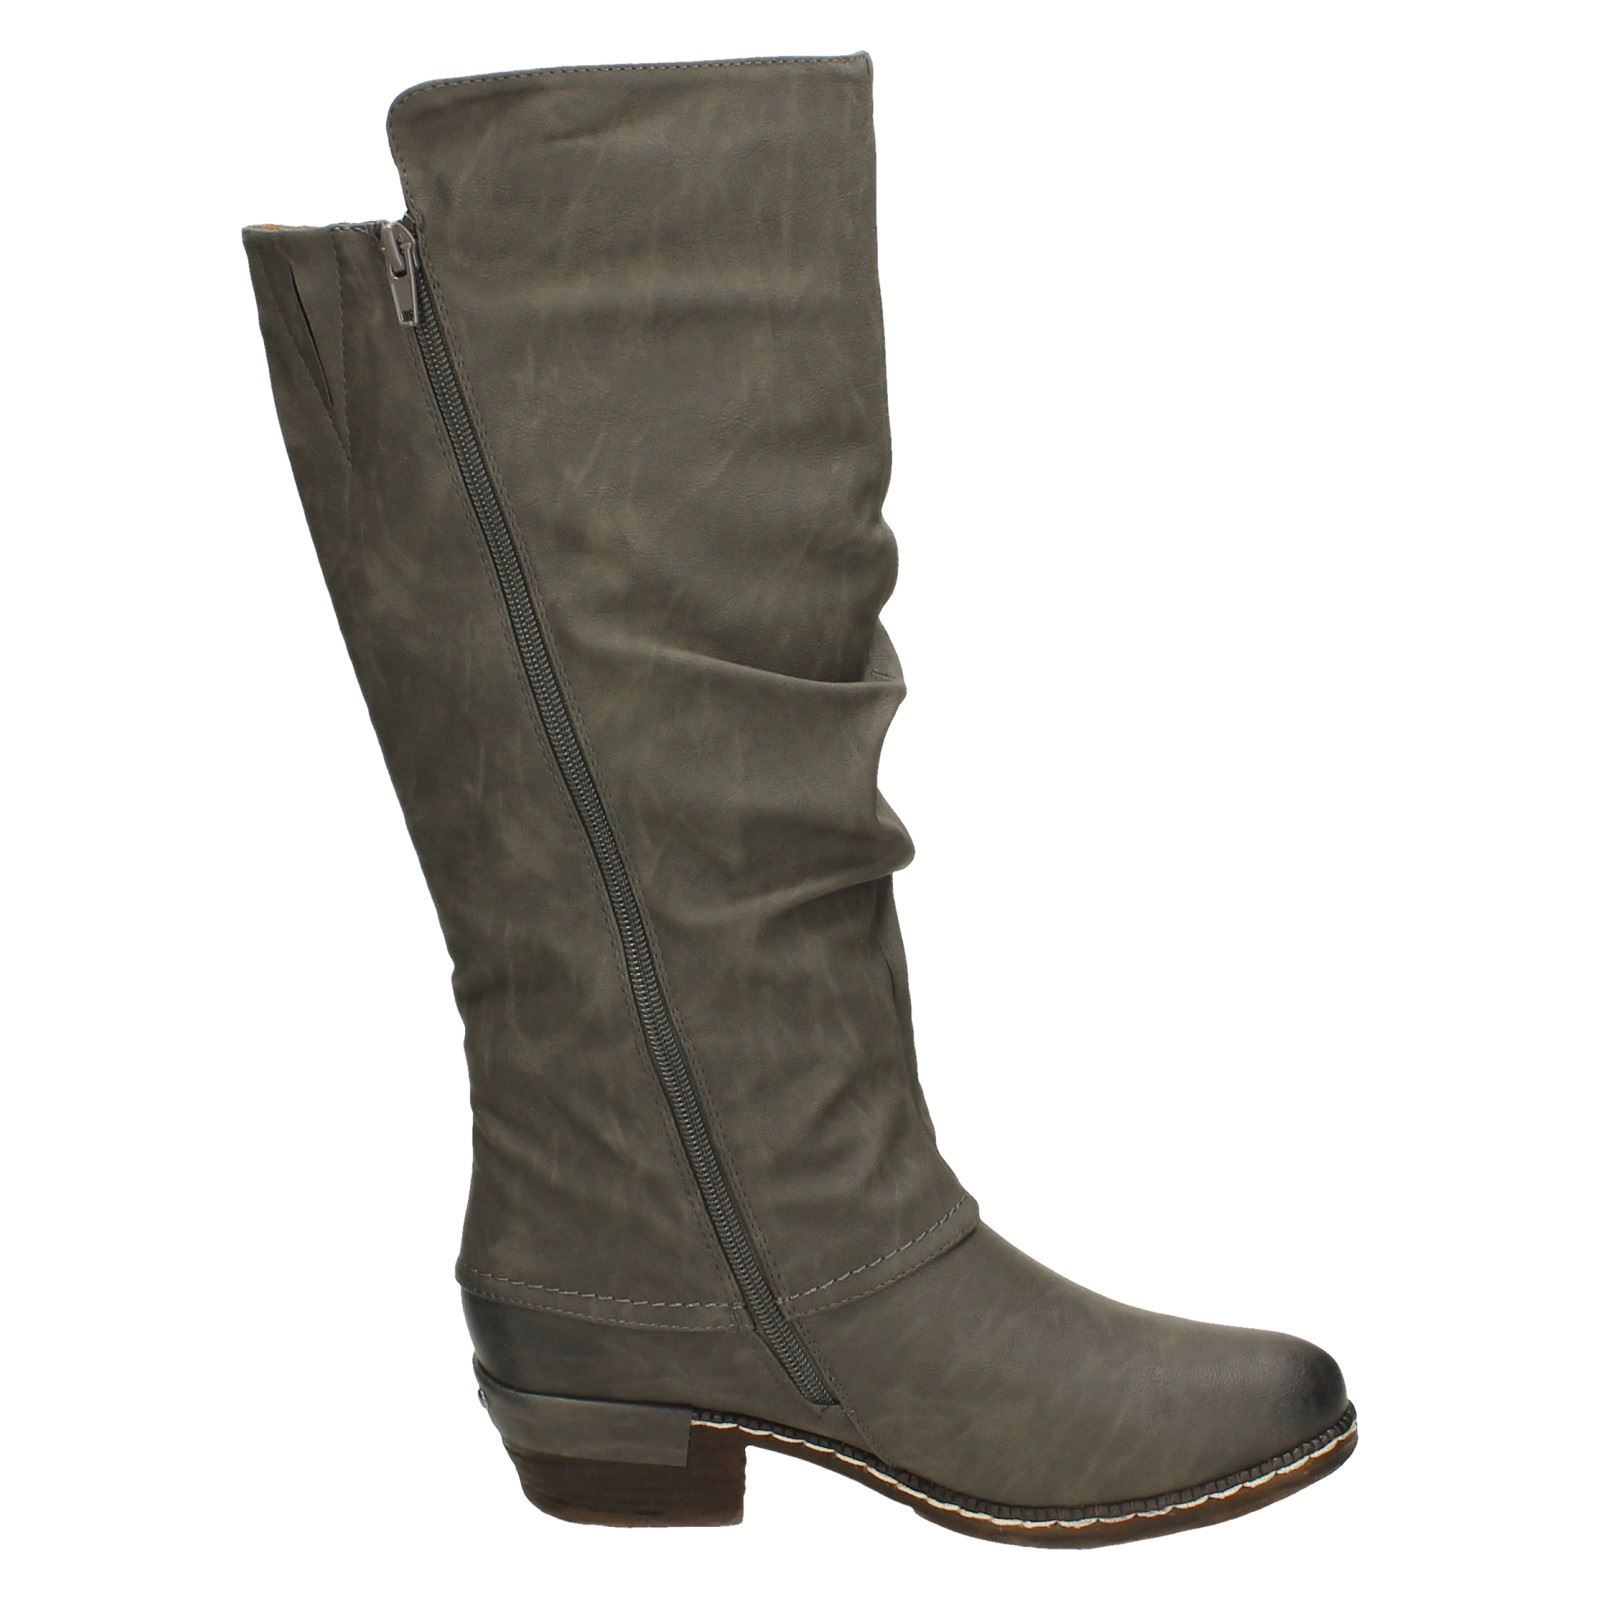 Rieker Ladies Knee High Casual Boots